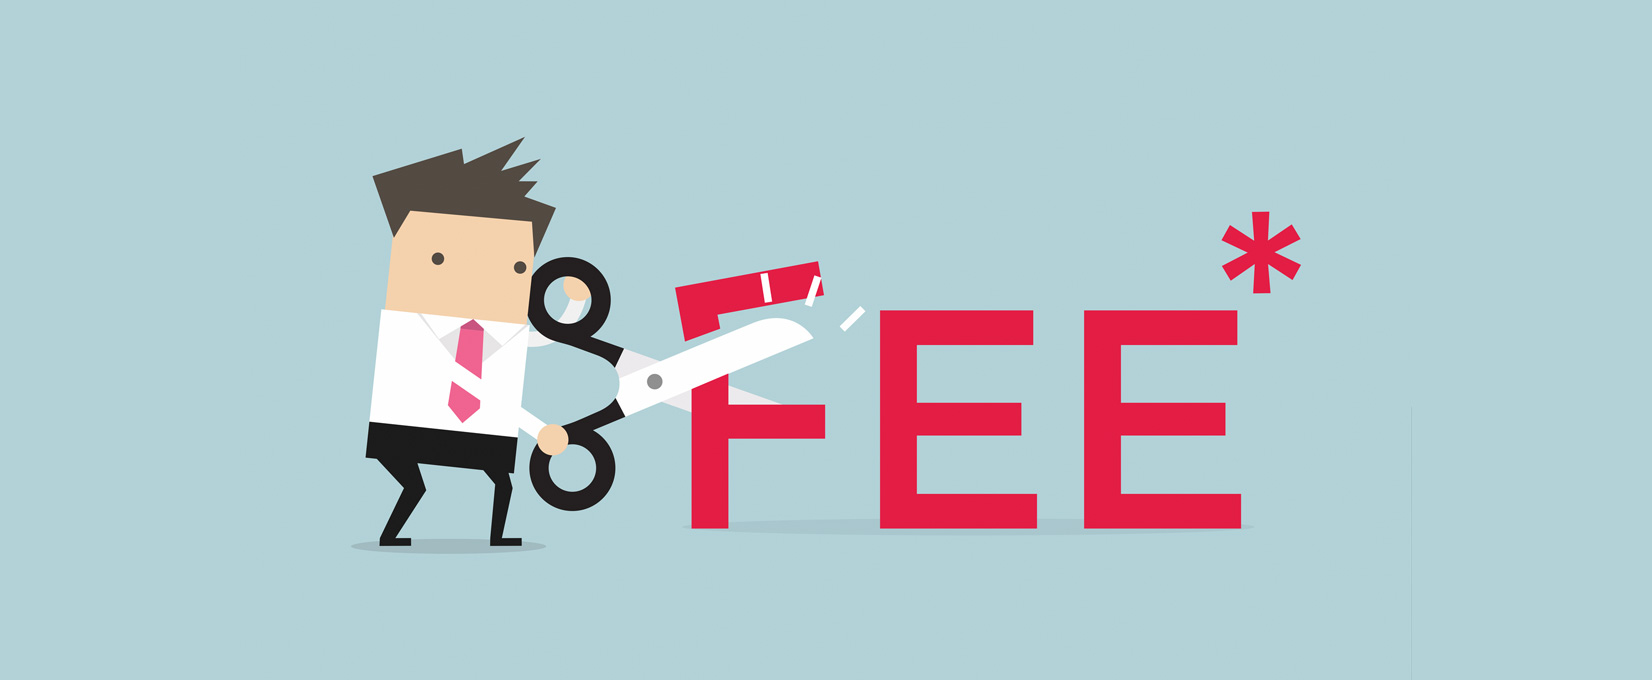 How To Reclaim Insertion Fee Credits On Ebay Guides Auction Nudge